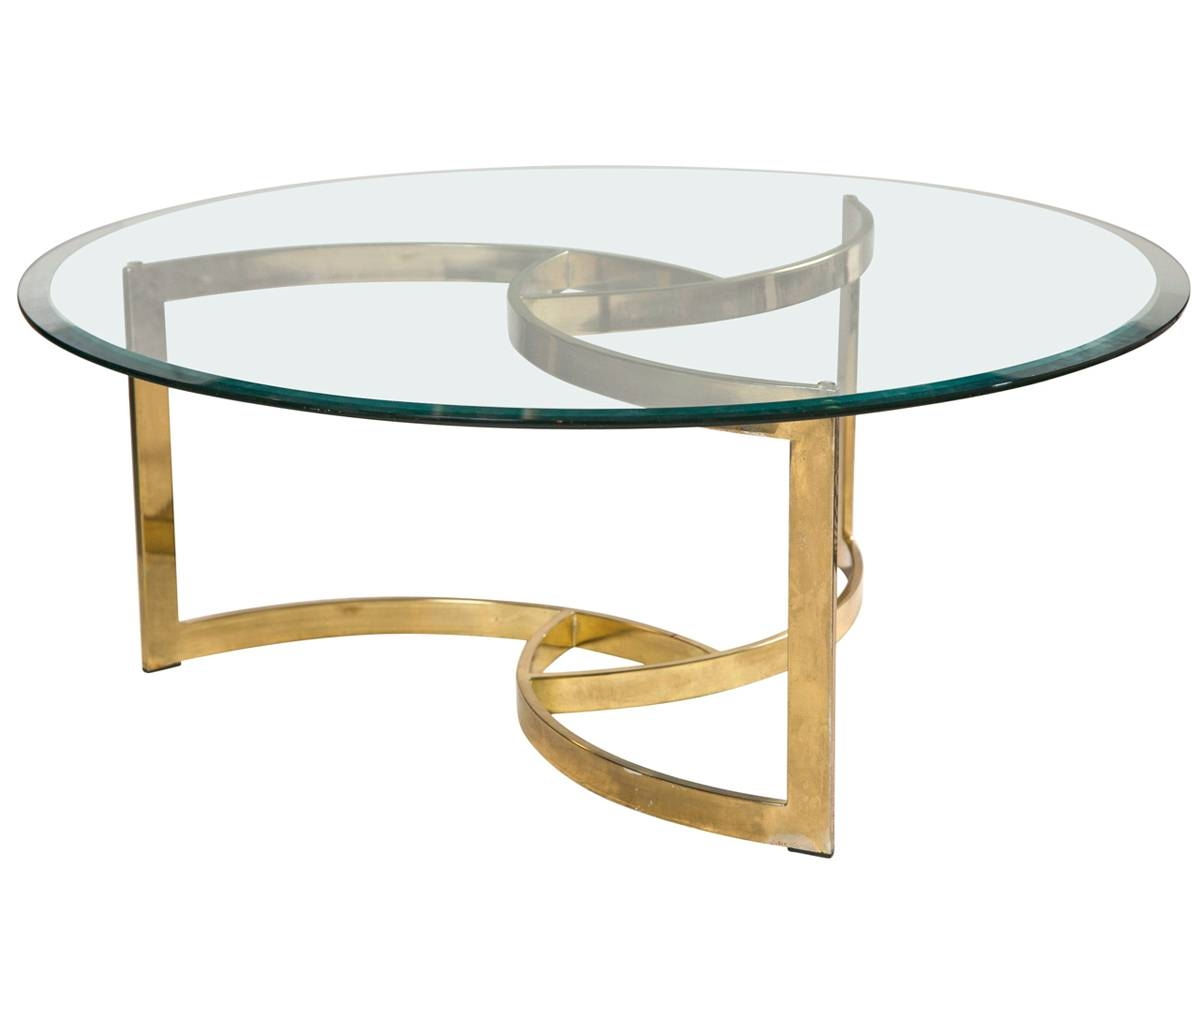 Vintage Brass And Glass Coffee Table throughout Vintage Glass Coffee Tables (Image 16 of 30)